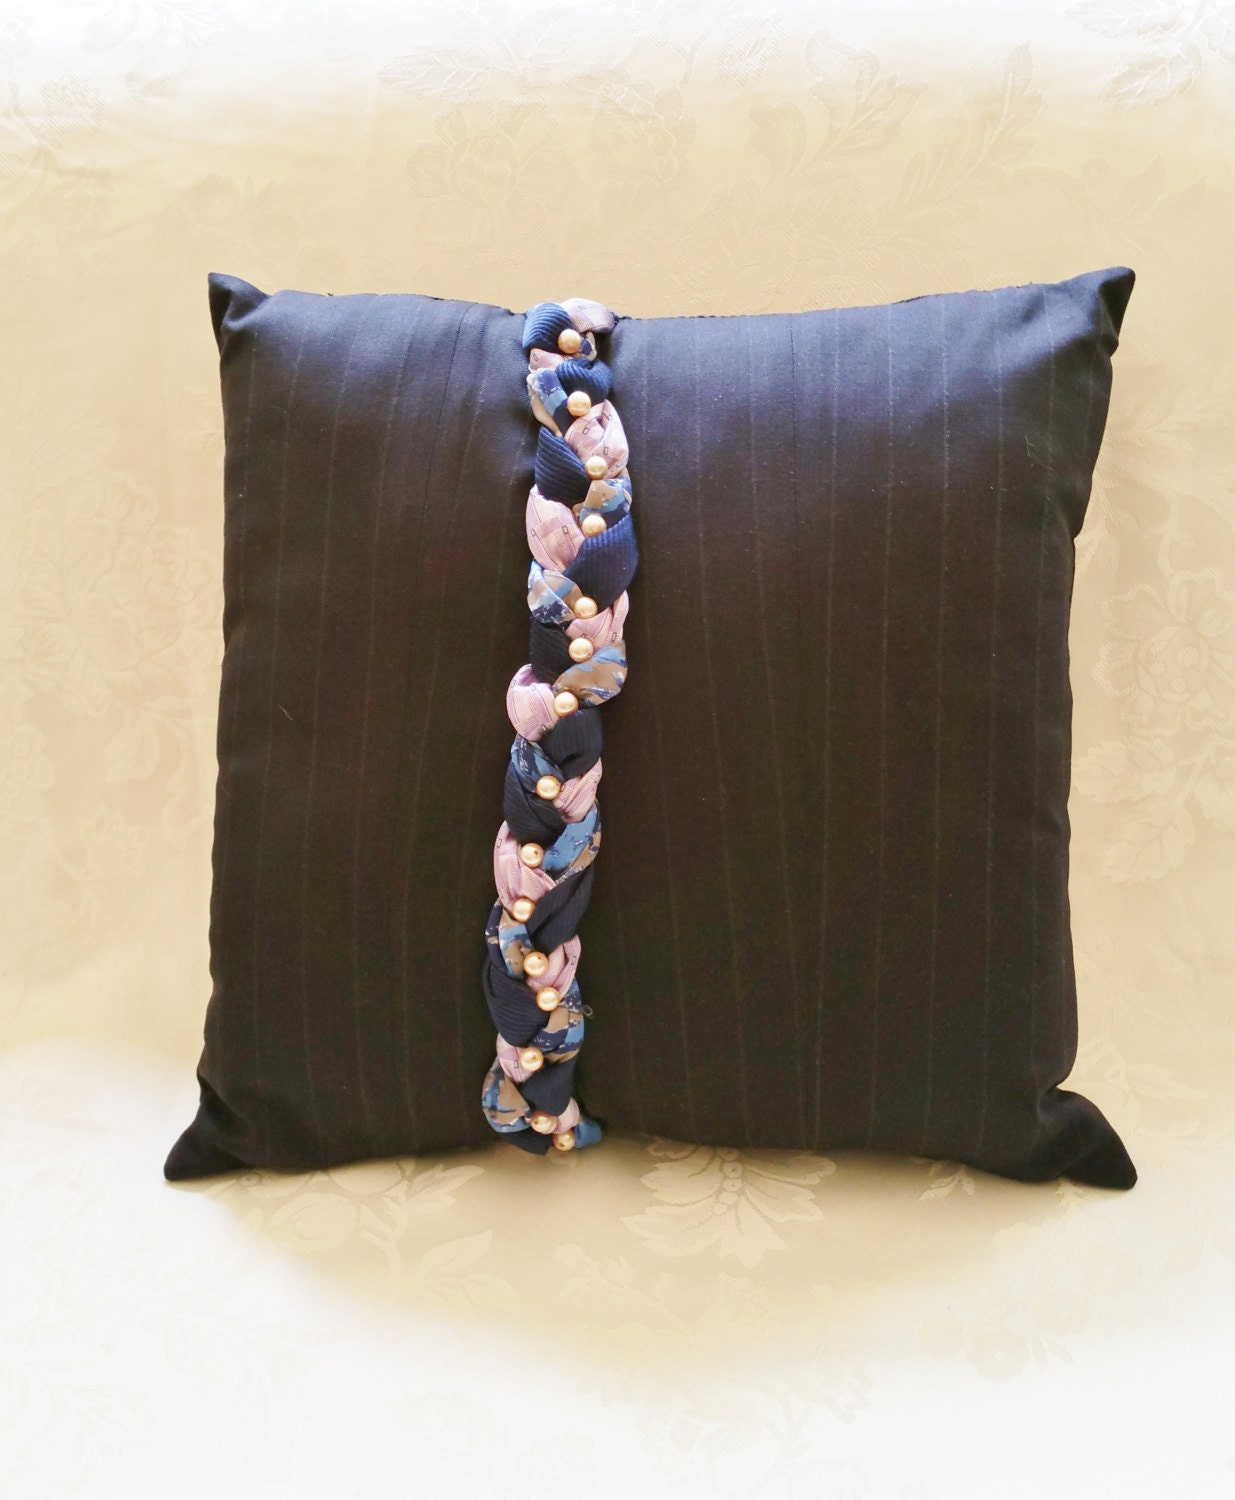 Decorative Pillows In Navy Blue : Decorative Pillow Navy Blue Pinstripe Throw by RebeccaAndRobin